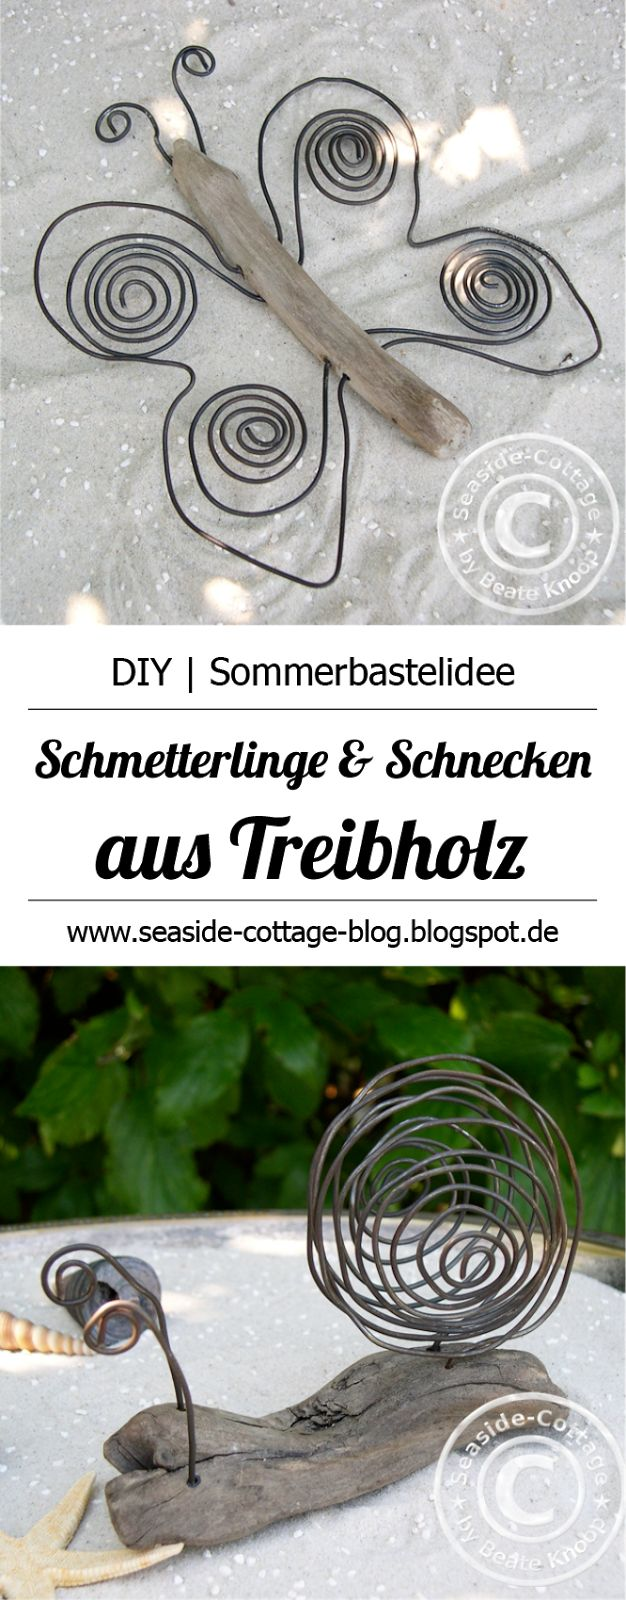 600 best Draht & Metall images on Pinterest   Wire, Advent and Bricolage